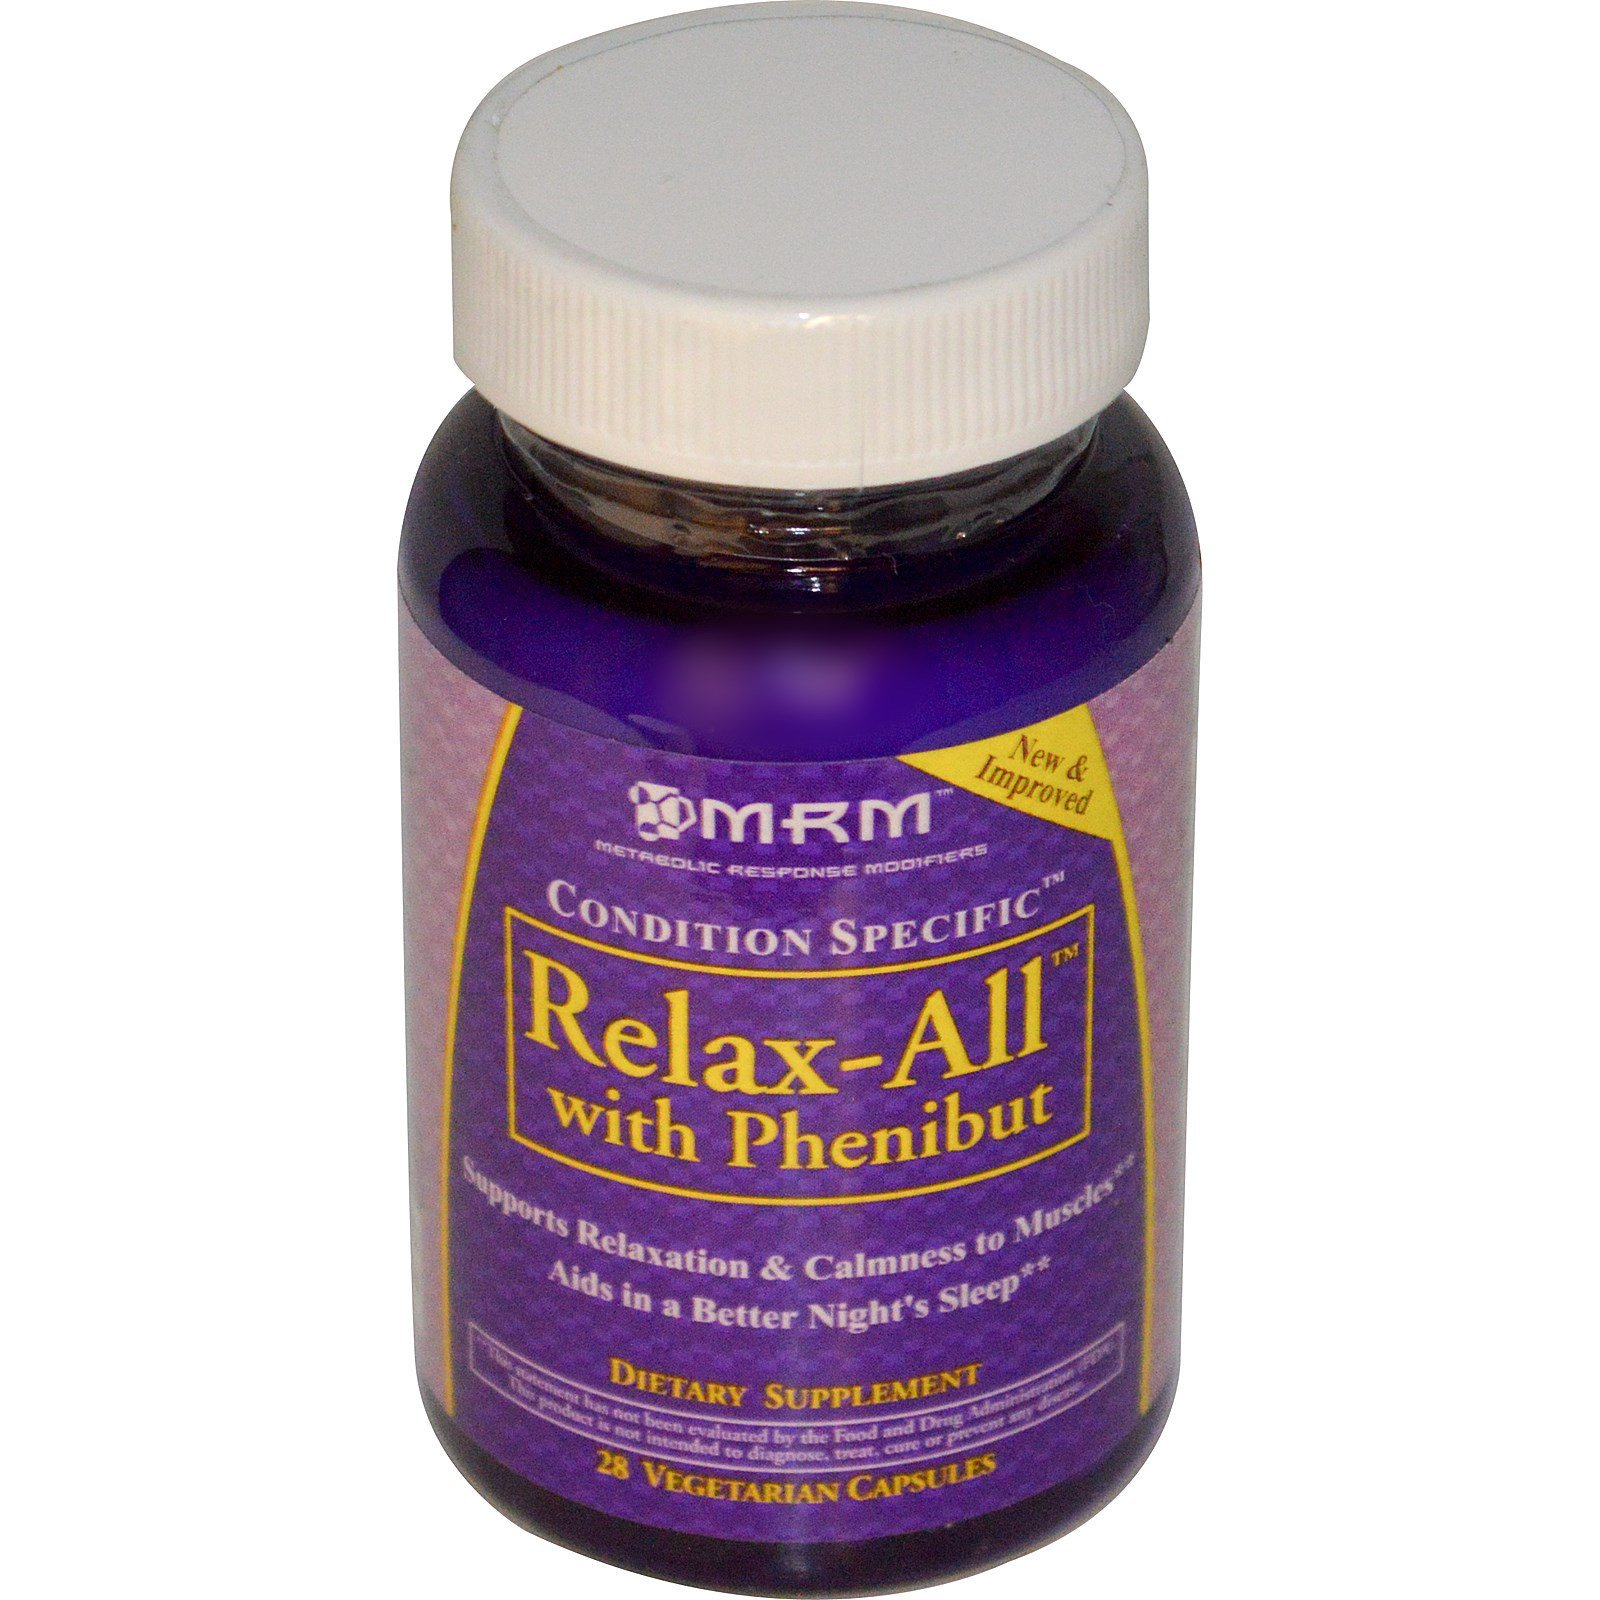 MRM, Relax-All with Phenibut, 28 Veggie Caps - iHerb com